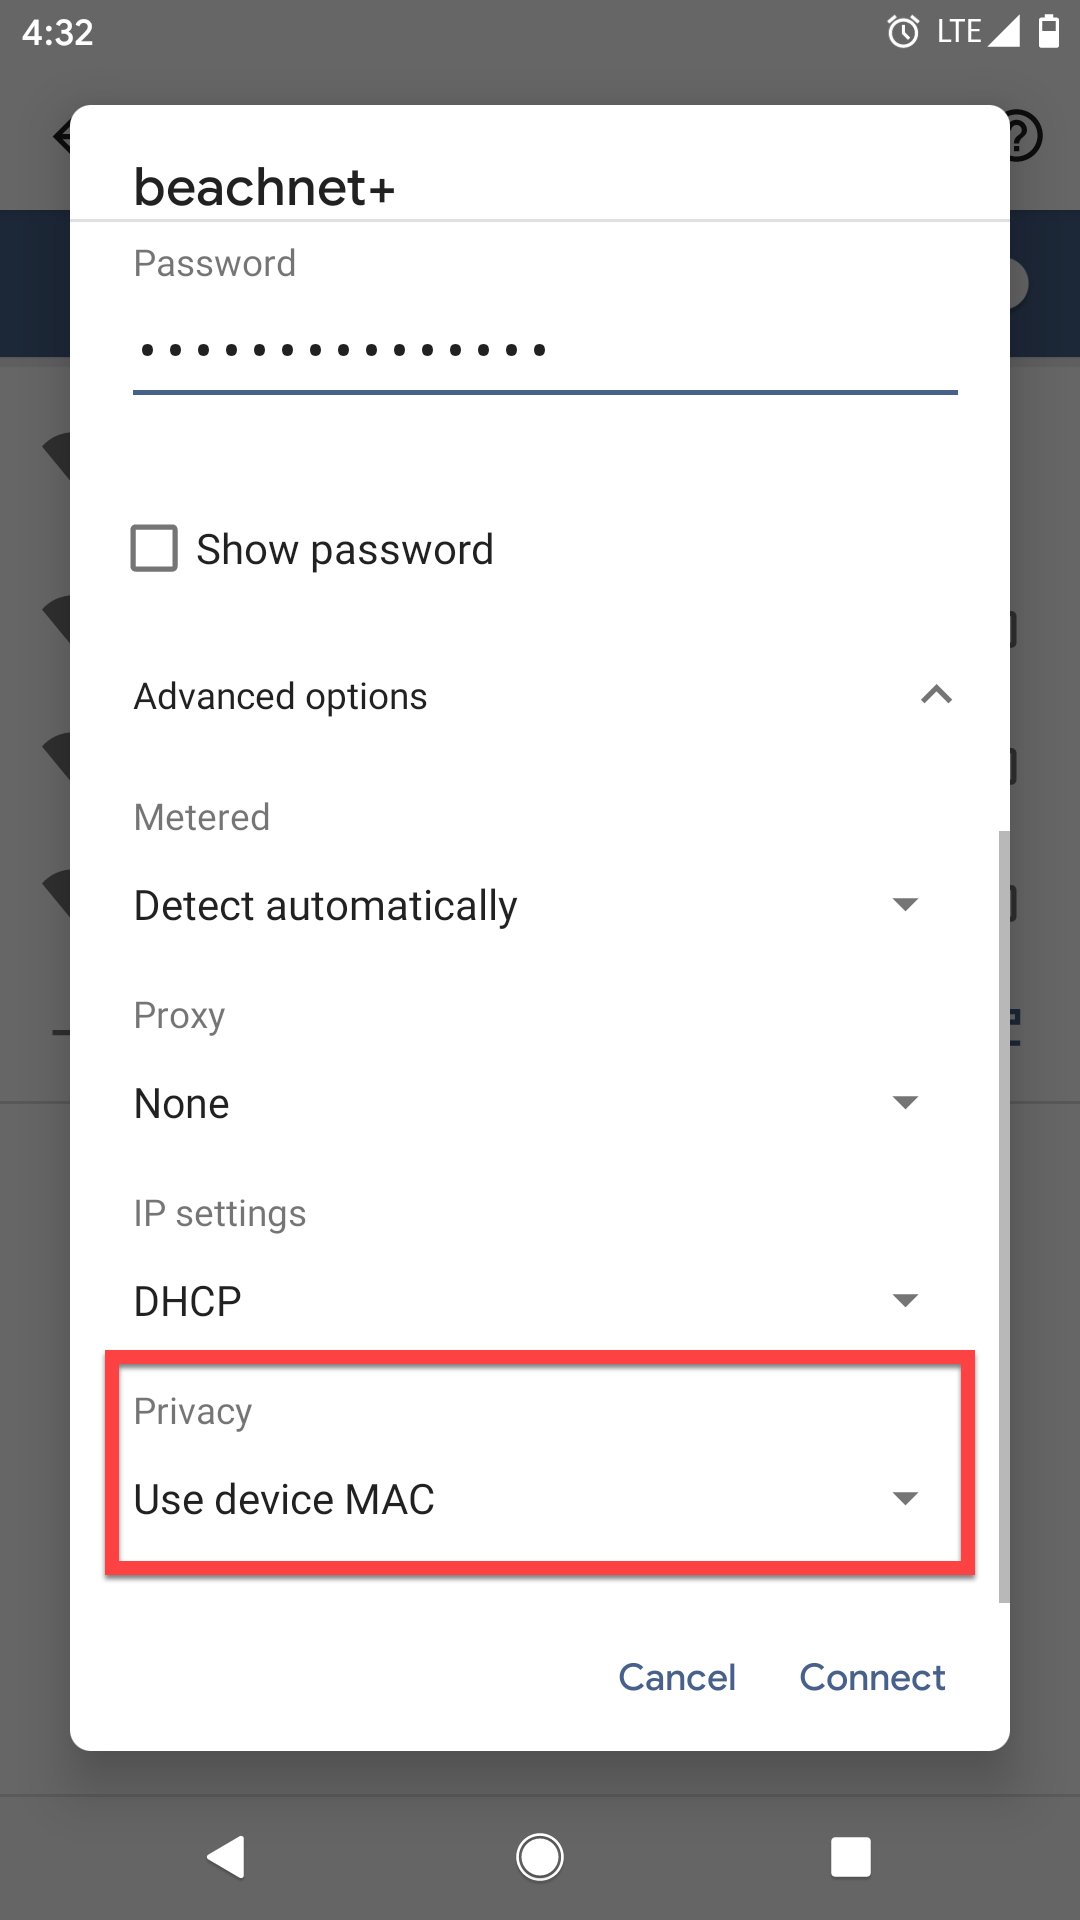 Privacy Setting Switched to Use device MAC